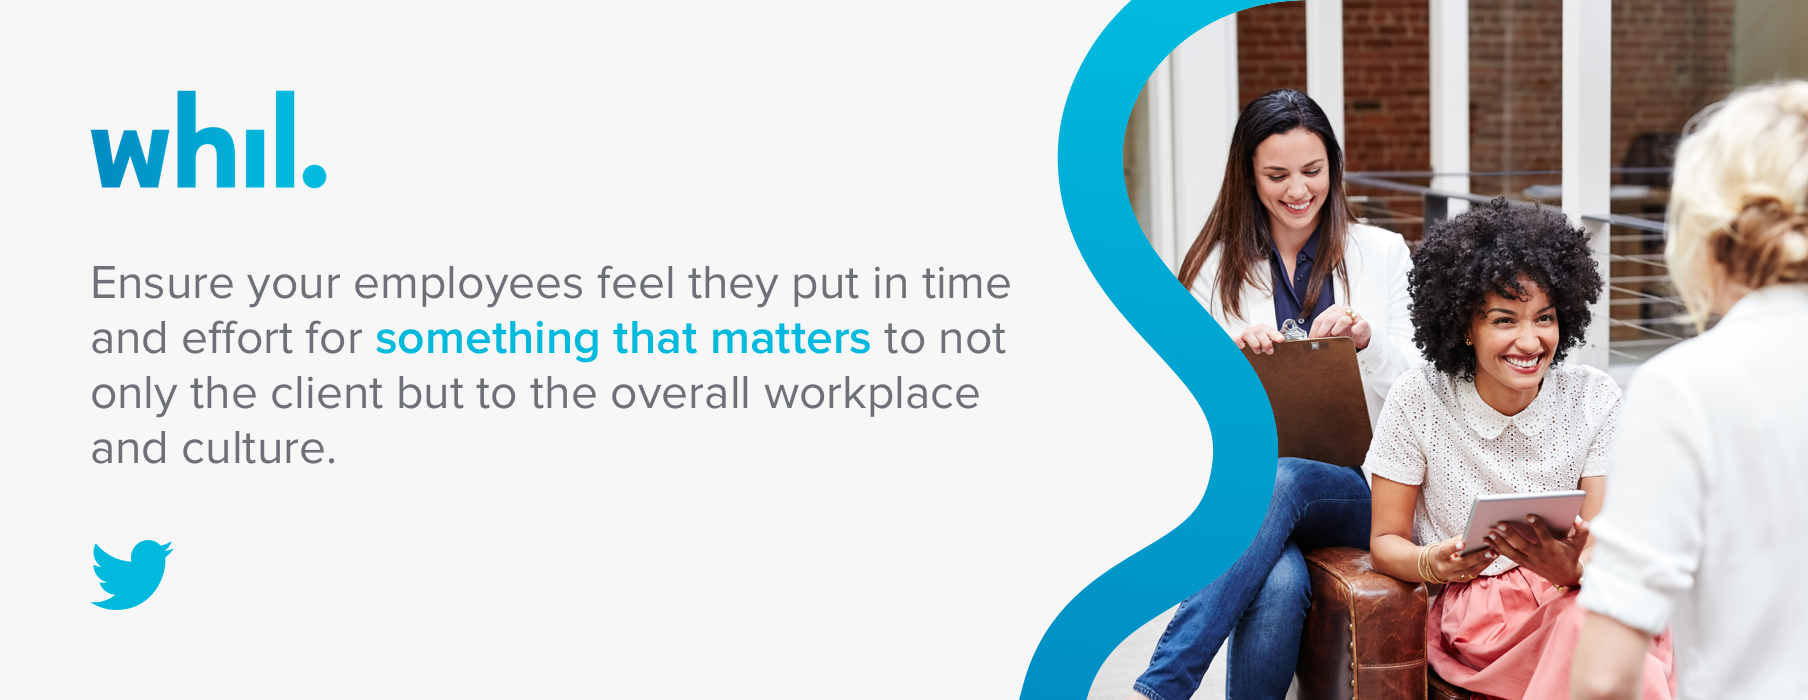 Ensure your employees feel they put in time and effort for something that matters to not only the client but to the overall workplace and culture.